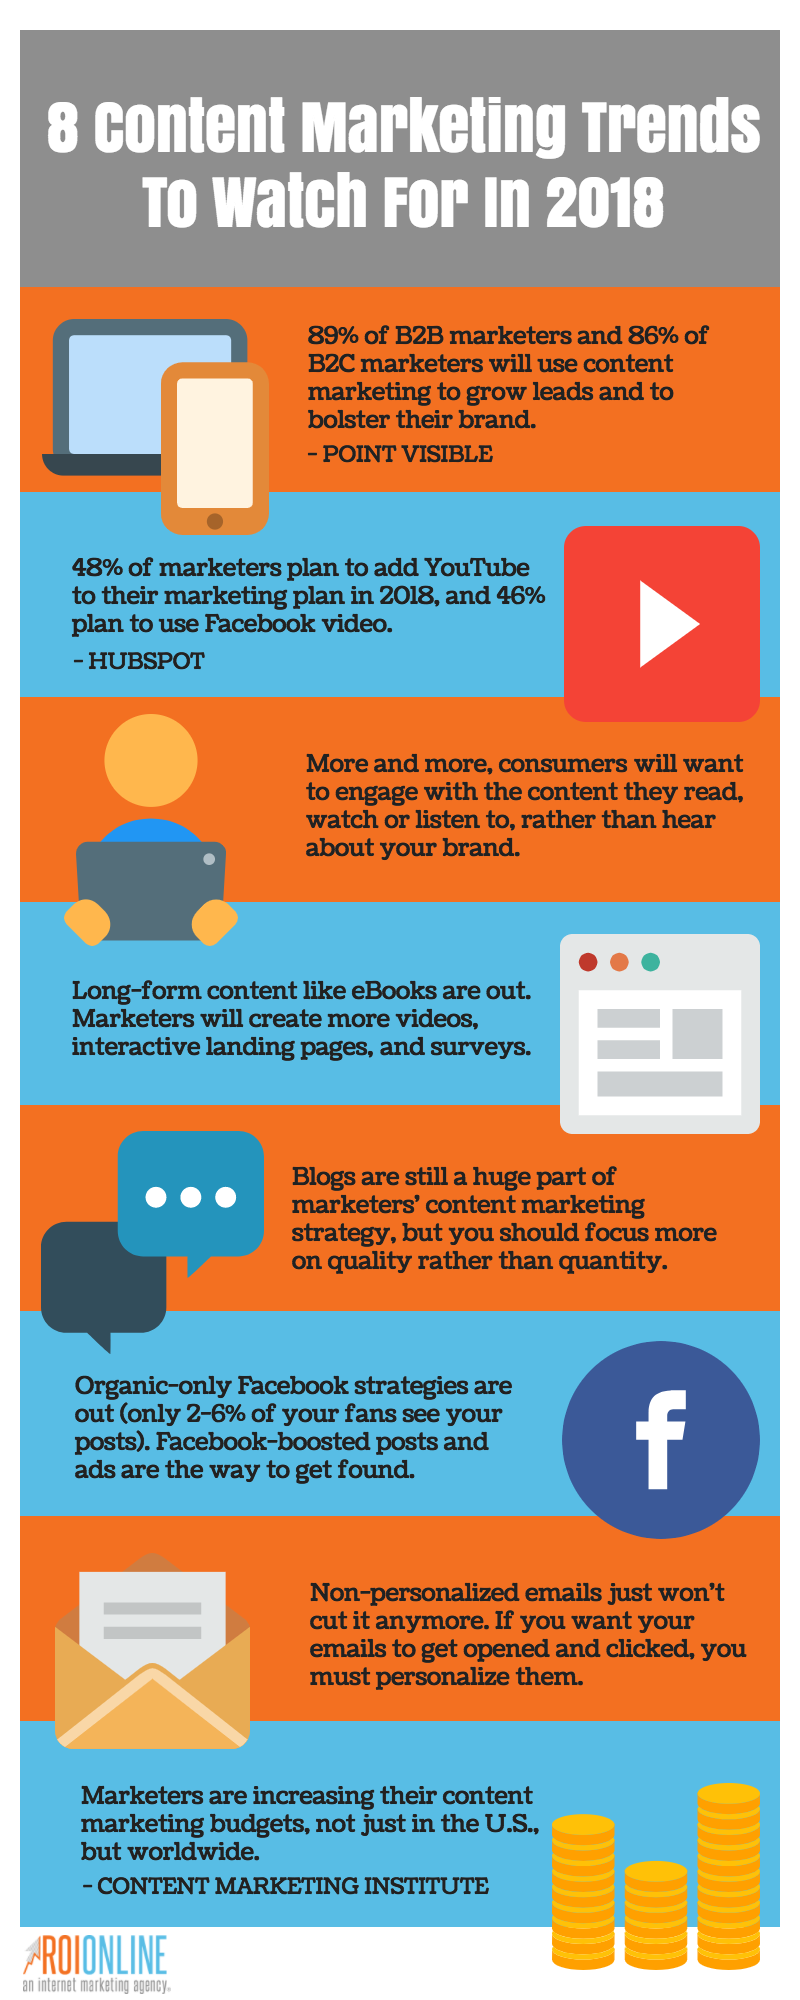 Content Marketing Trends 2018 Final (1).png